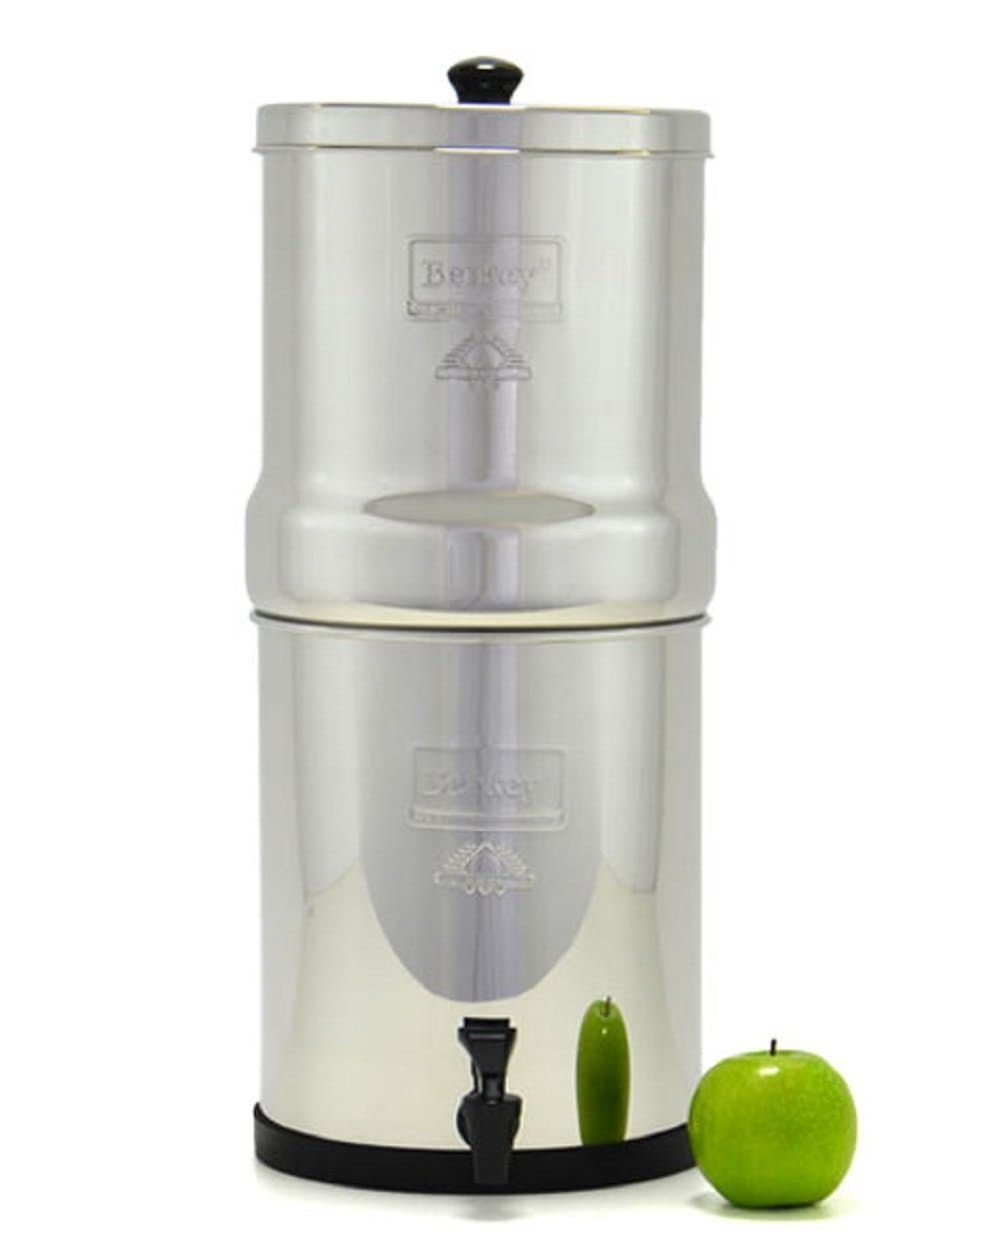 The Best Water Filters At Every Price Point Berkey Water Filter Countertop Water Filter Water Filter